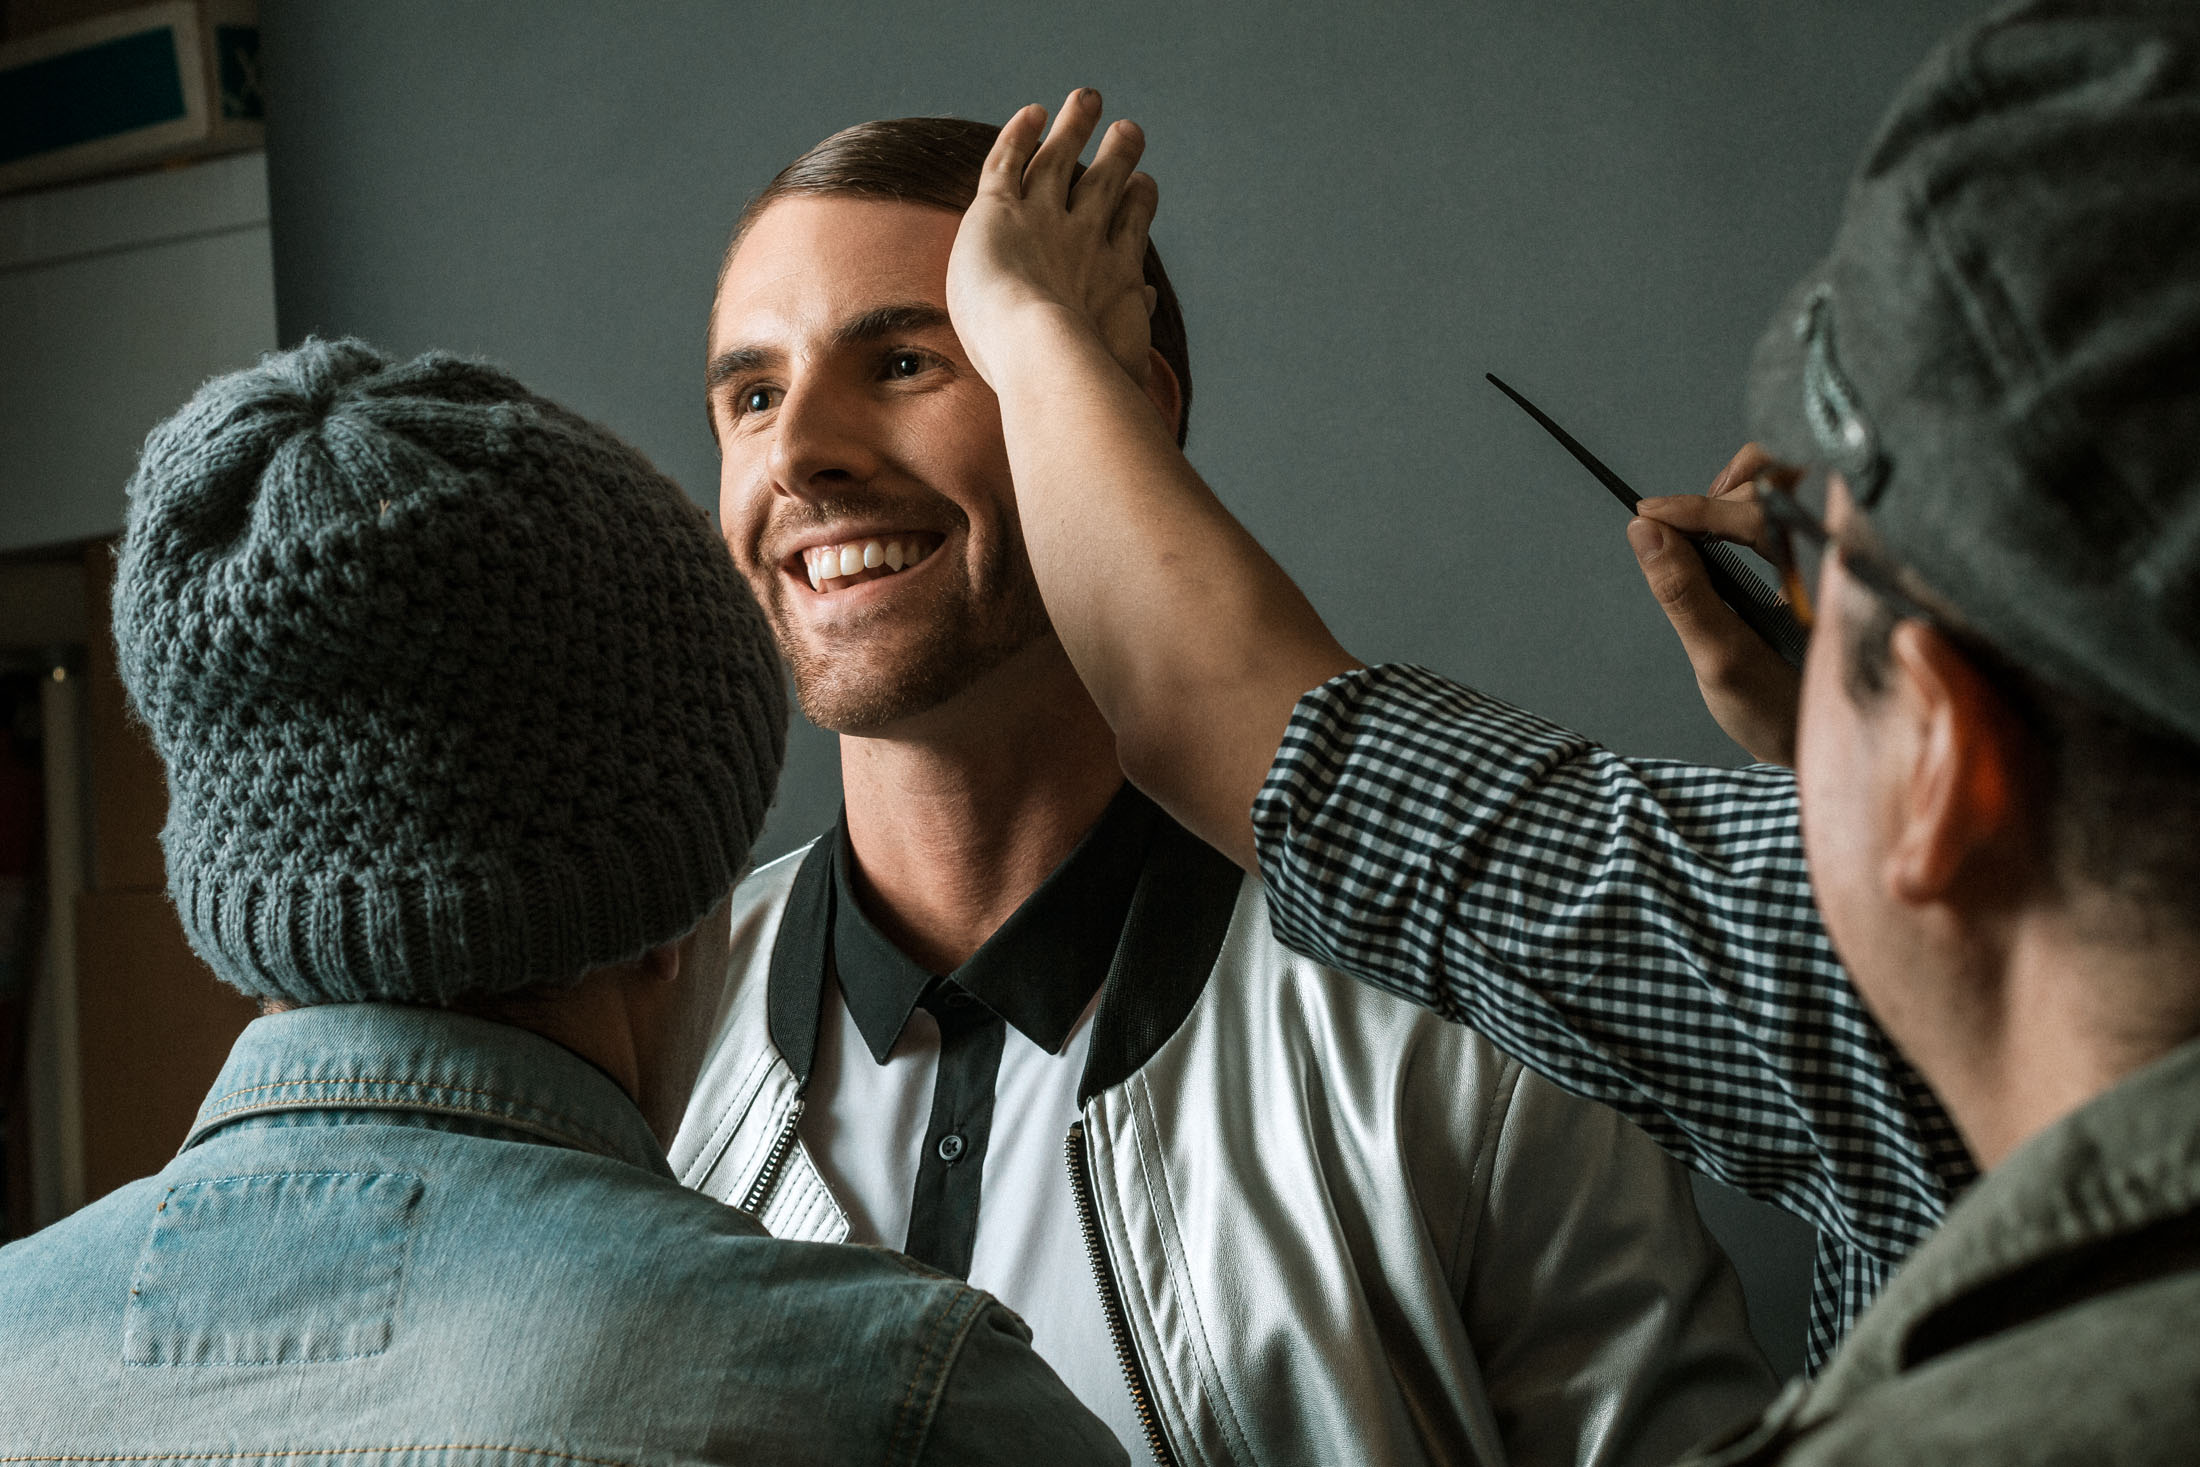 How many creatives does it take to make the model photo ready?